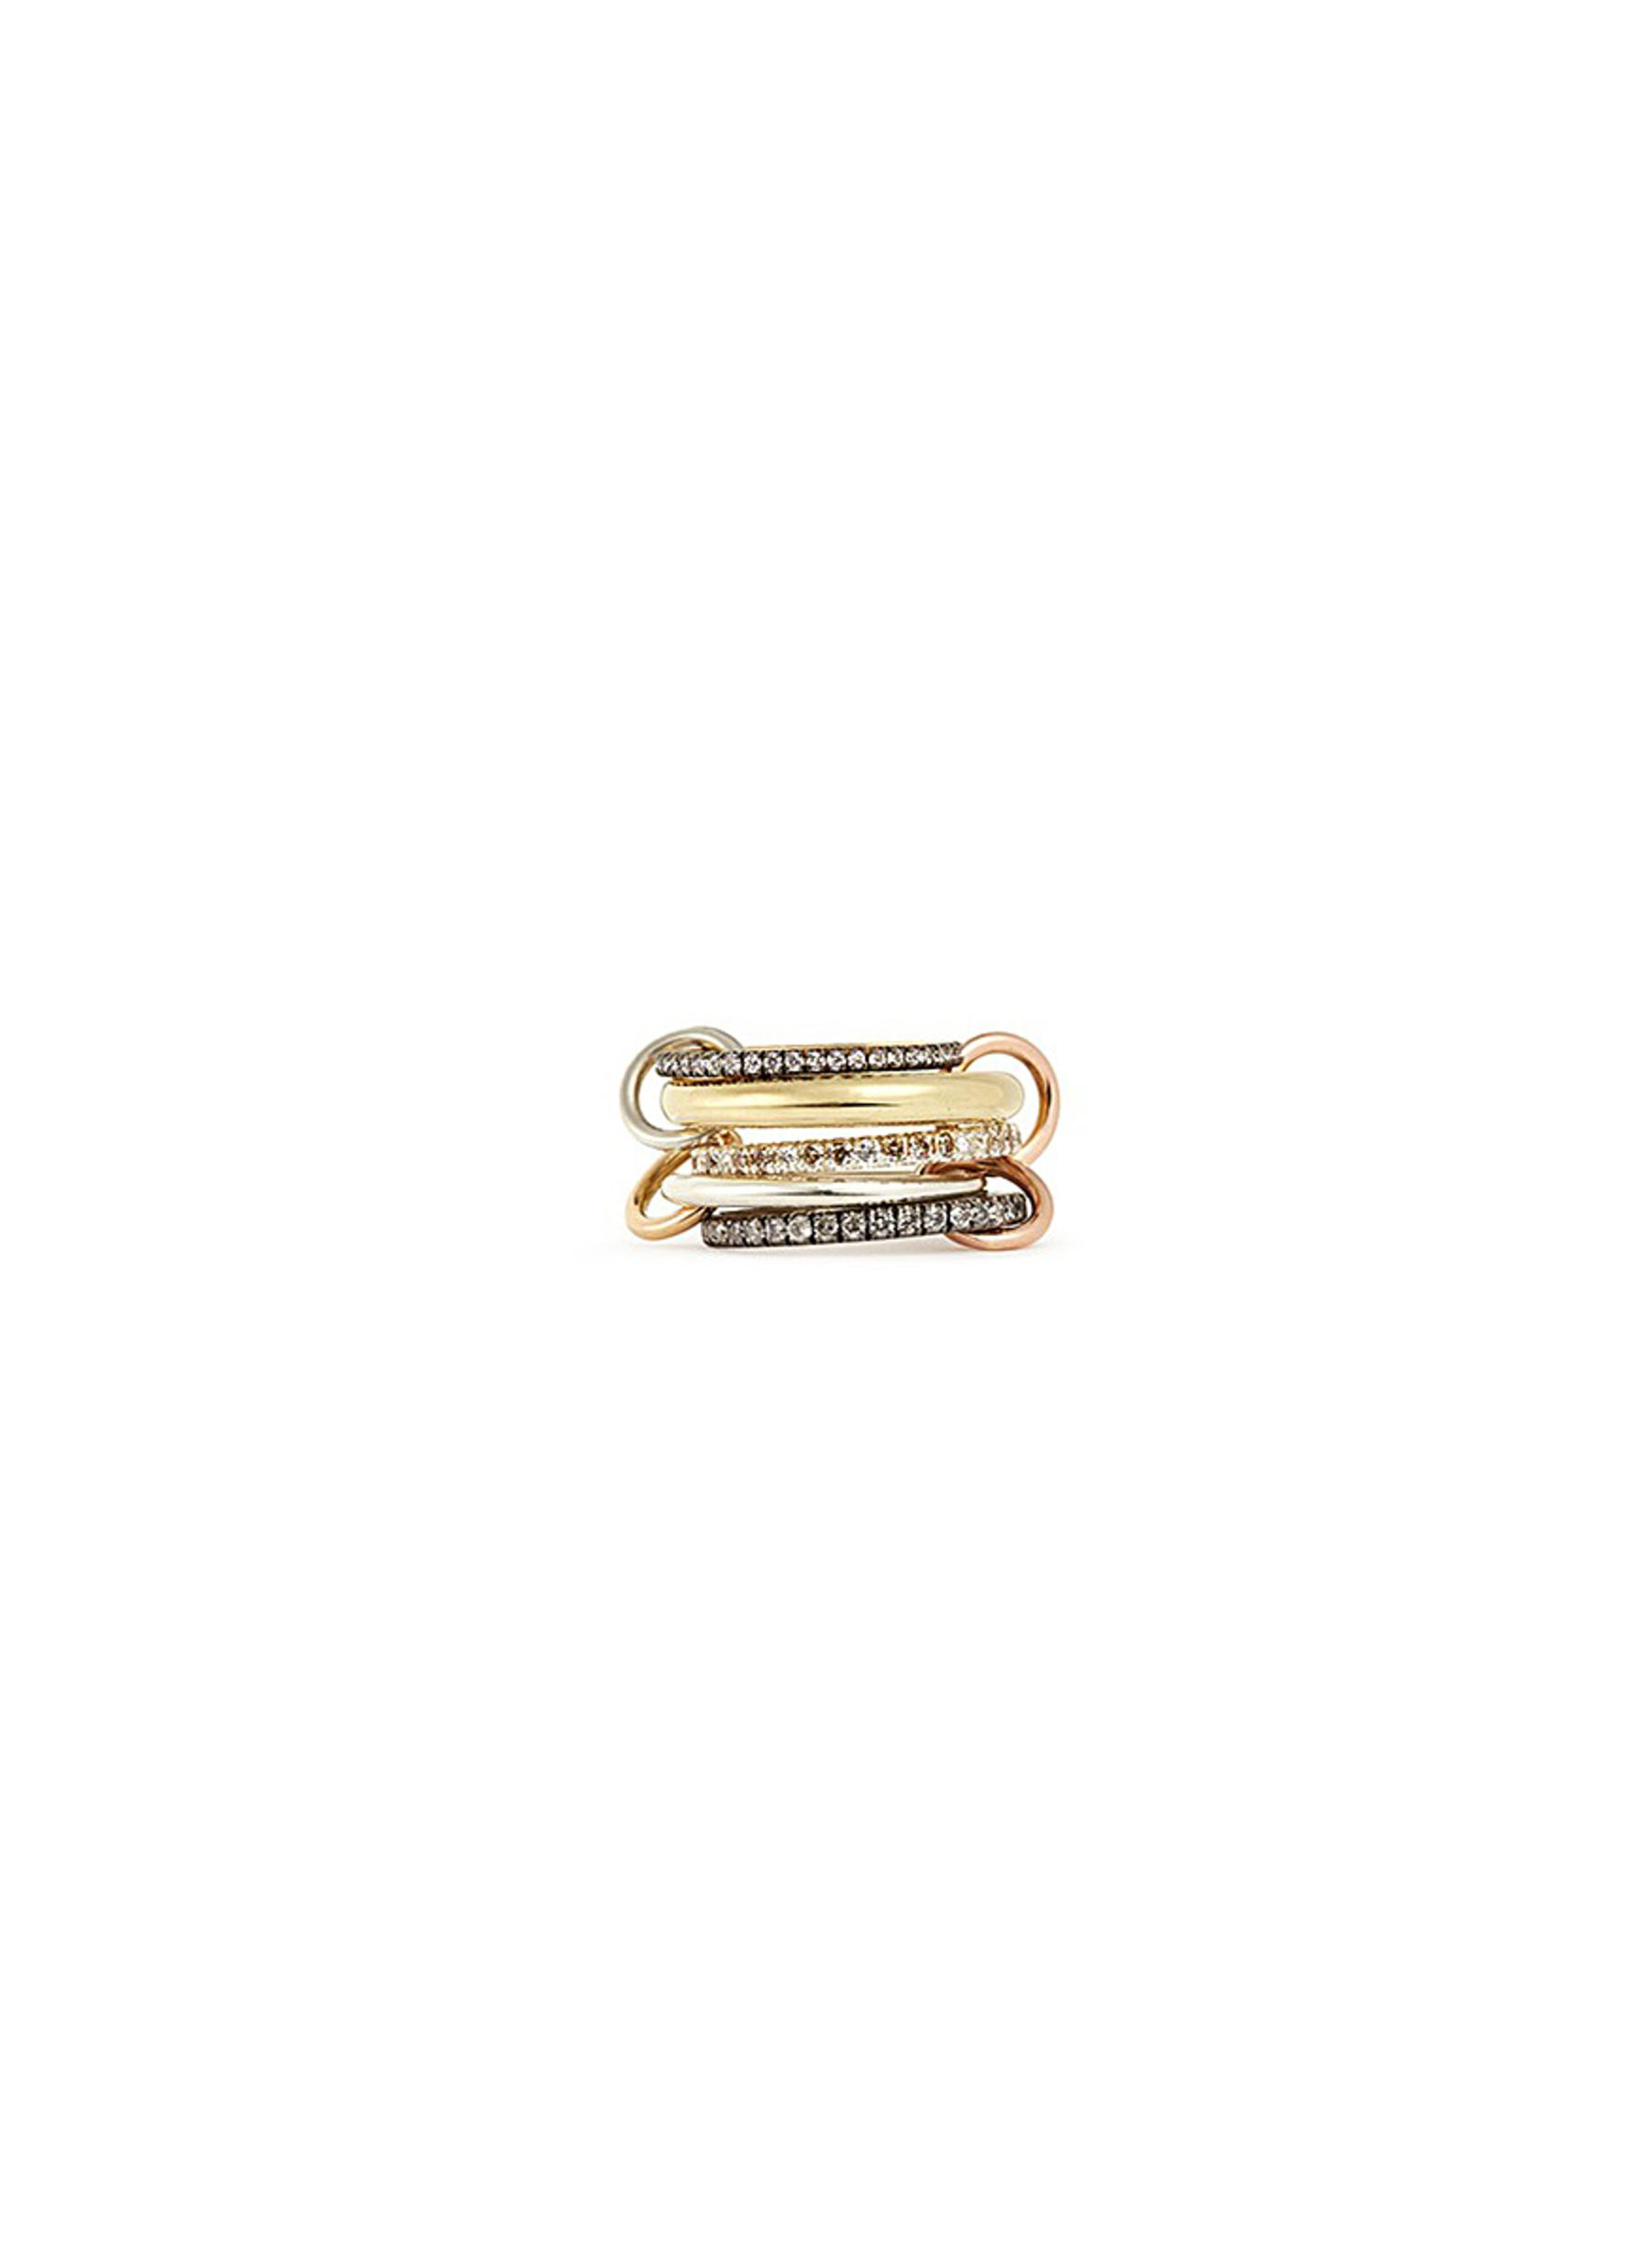 Nexus diamond 18k gold five link ring by Spinelli Kilcollin